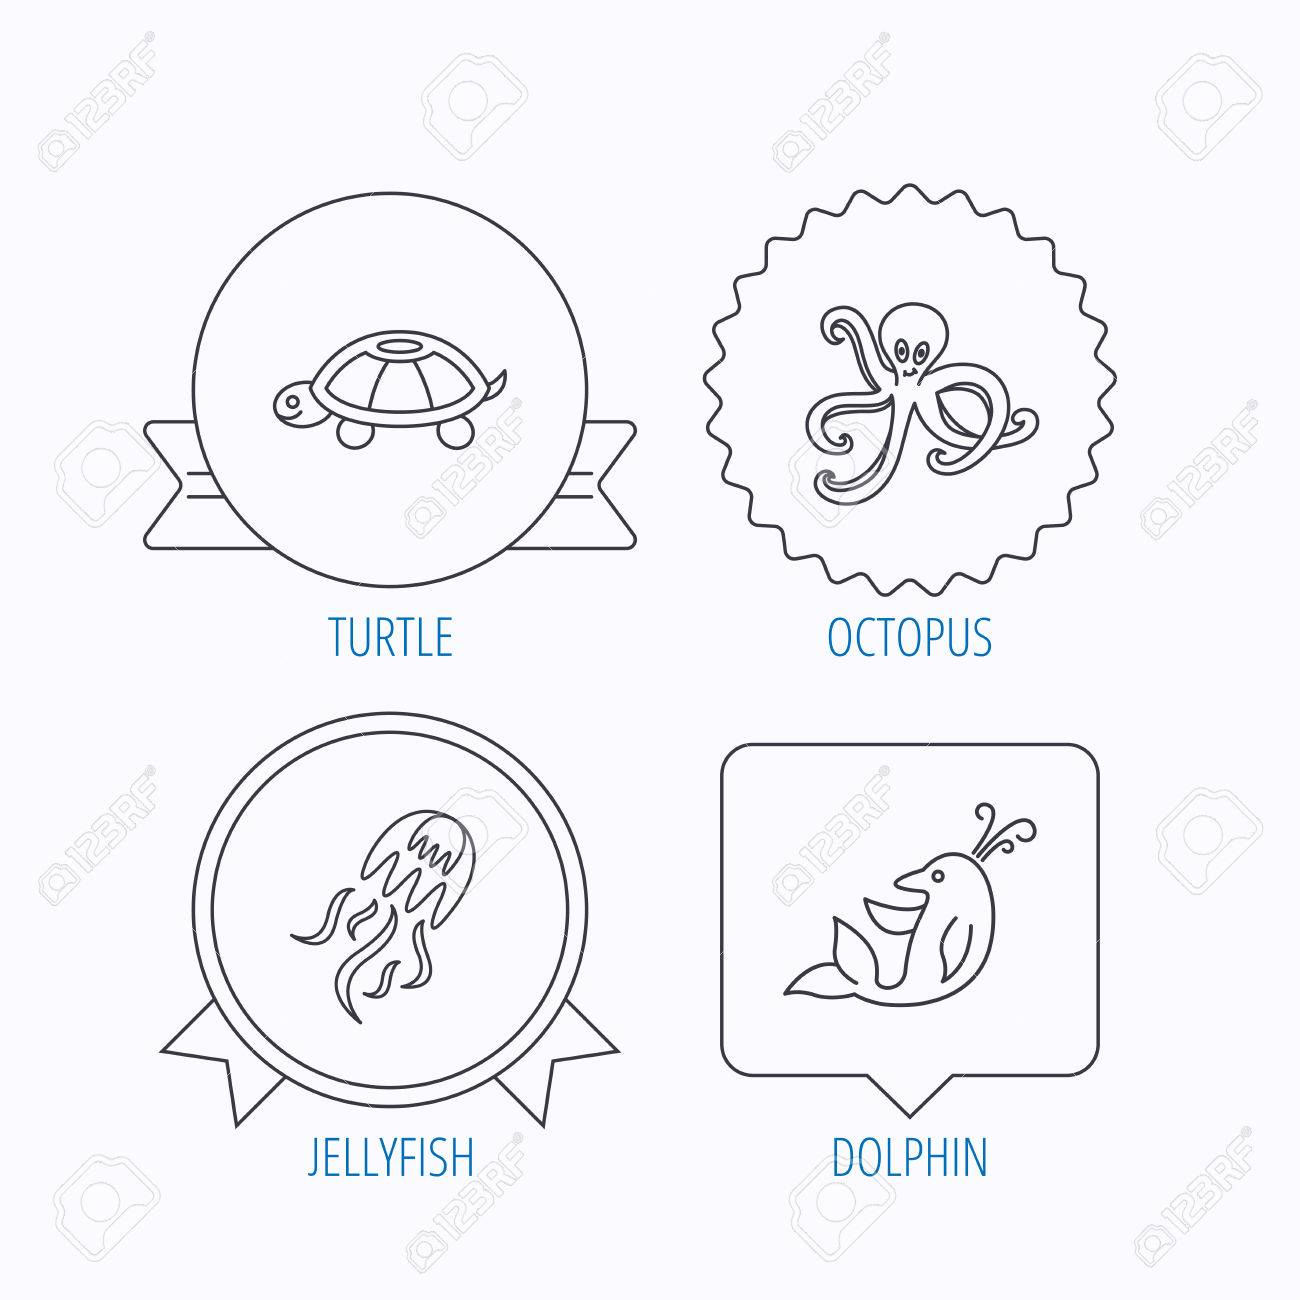 hight resolution of octopus turtle and dolphin icons jellyfish linear sign award medal star label